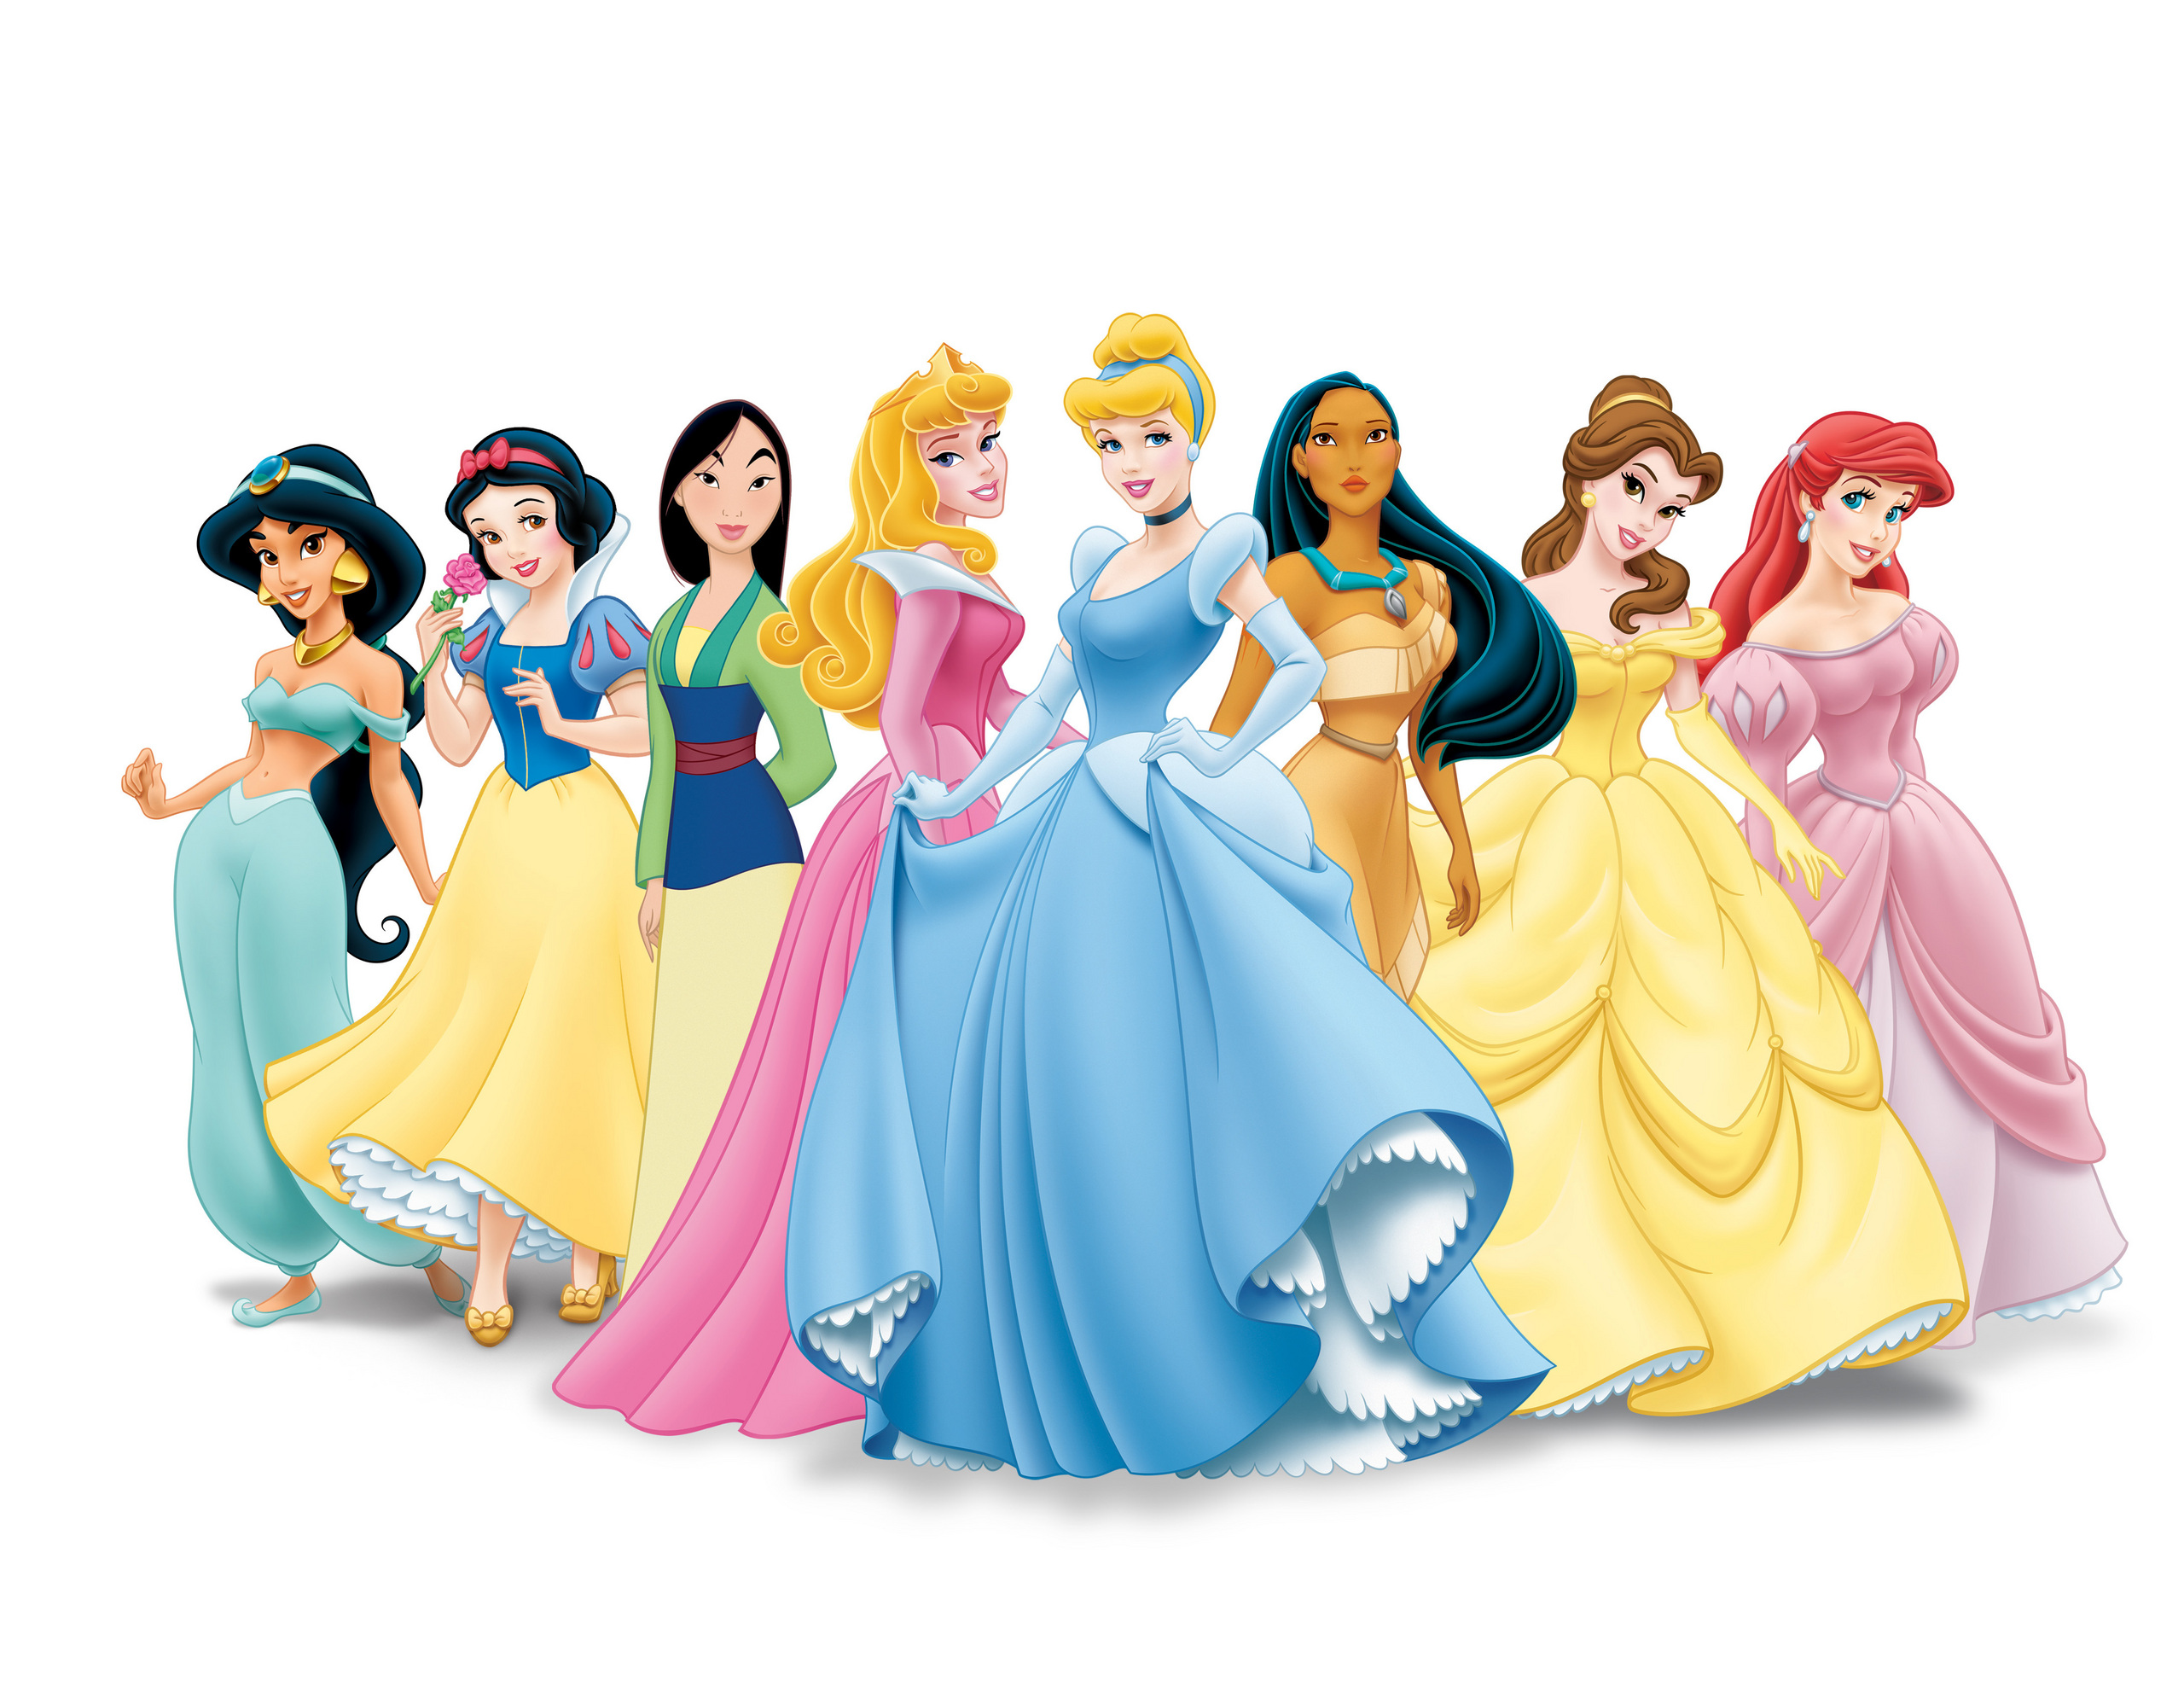 Disney Princesses Snow White Image 6875148 Fanpop